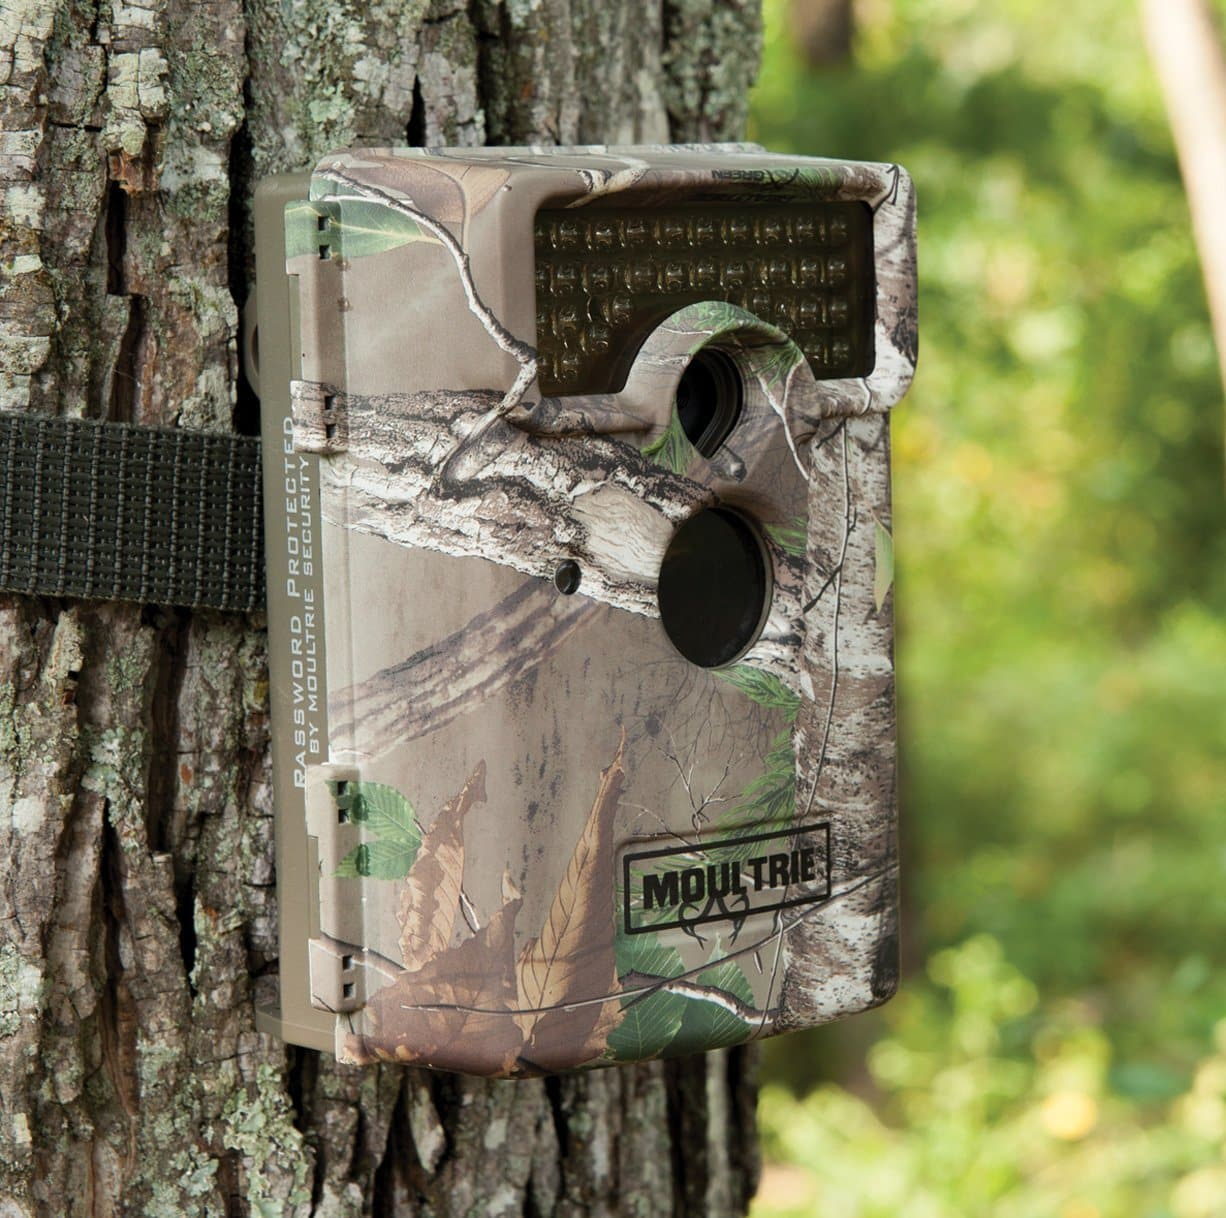 Game Hunt V300 HD 12MP Digital Game Cam Trail Camera Review